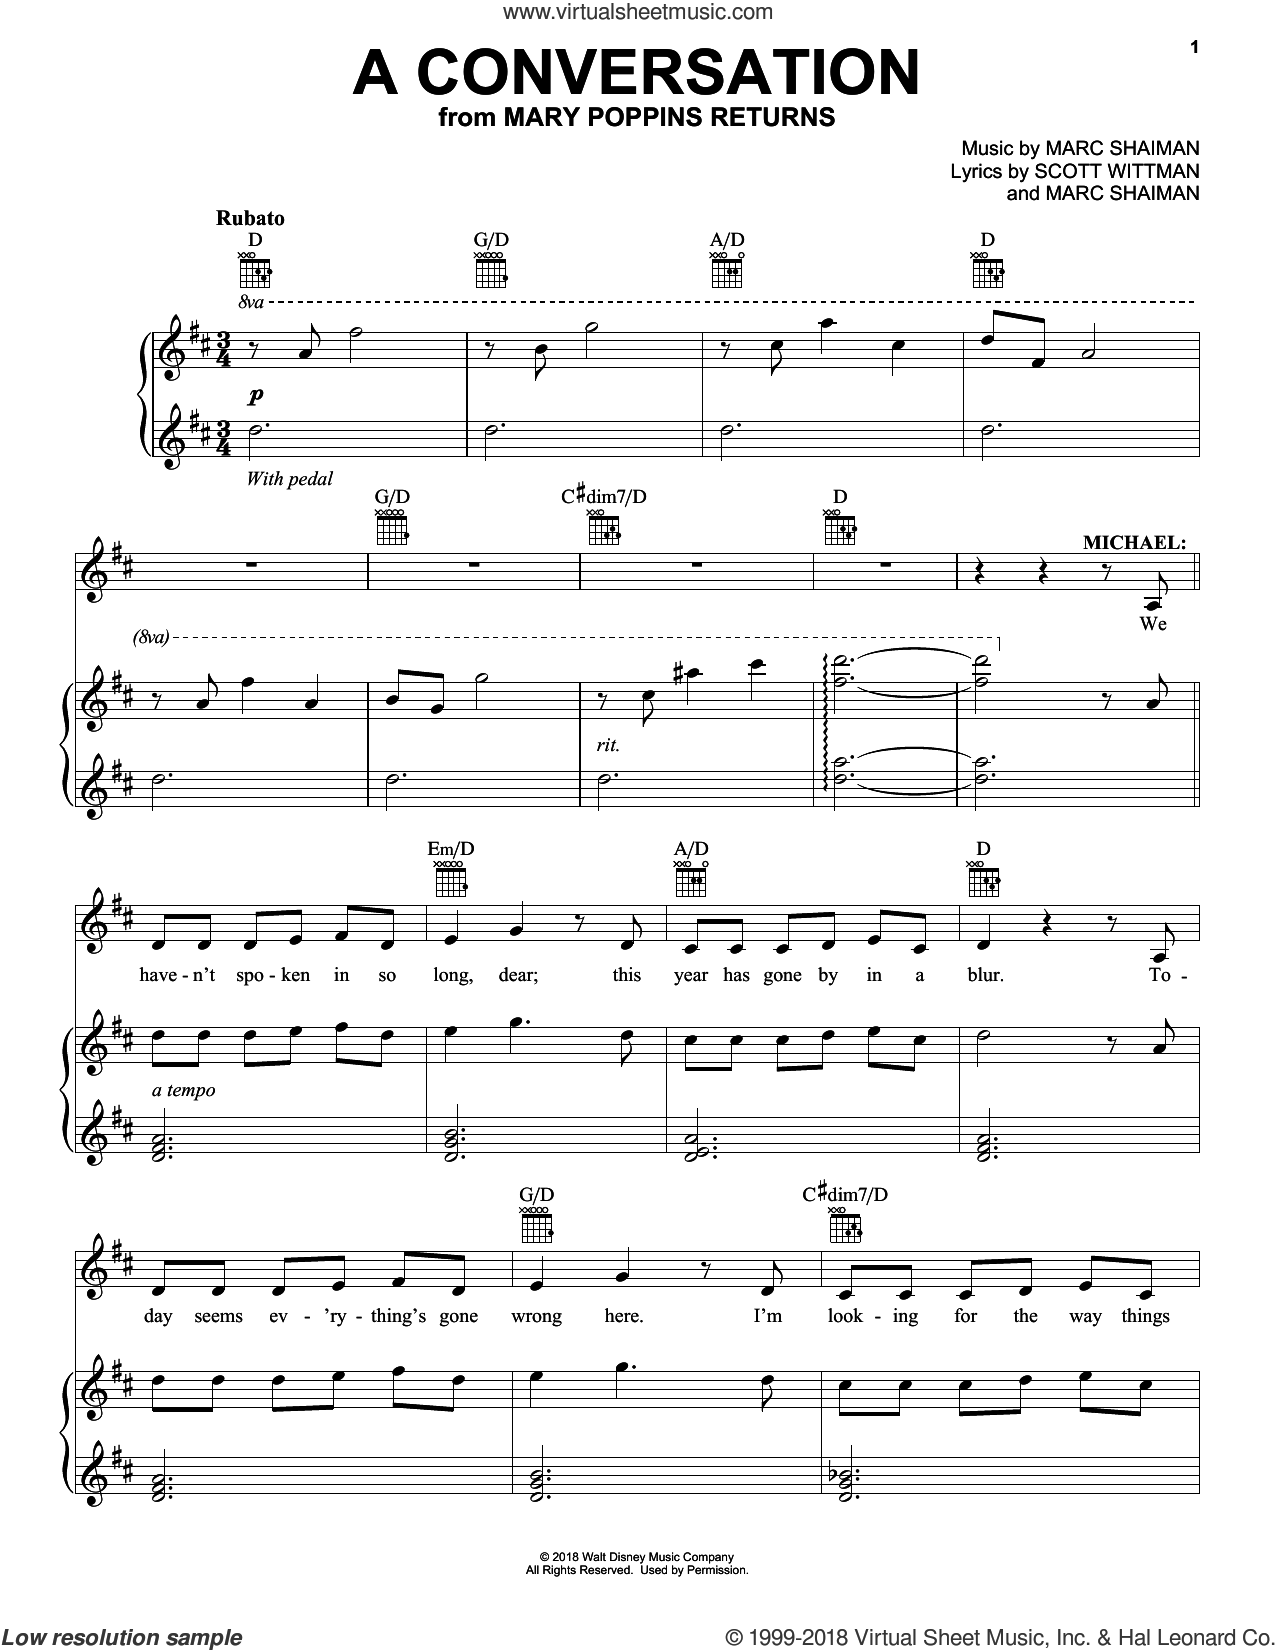 A Conversation (from Mary Poppins Returns) sheet music for voice, piano or guitar by Ben Whishaw, Marc Shaiman and Scott Wittman, intermediate skill level